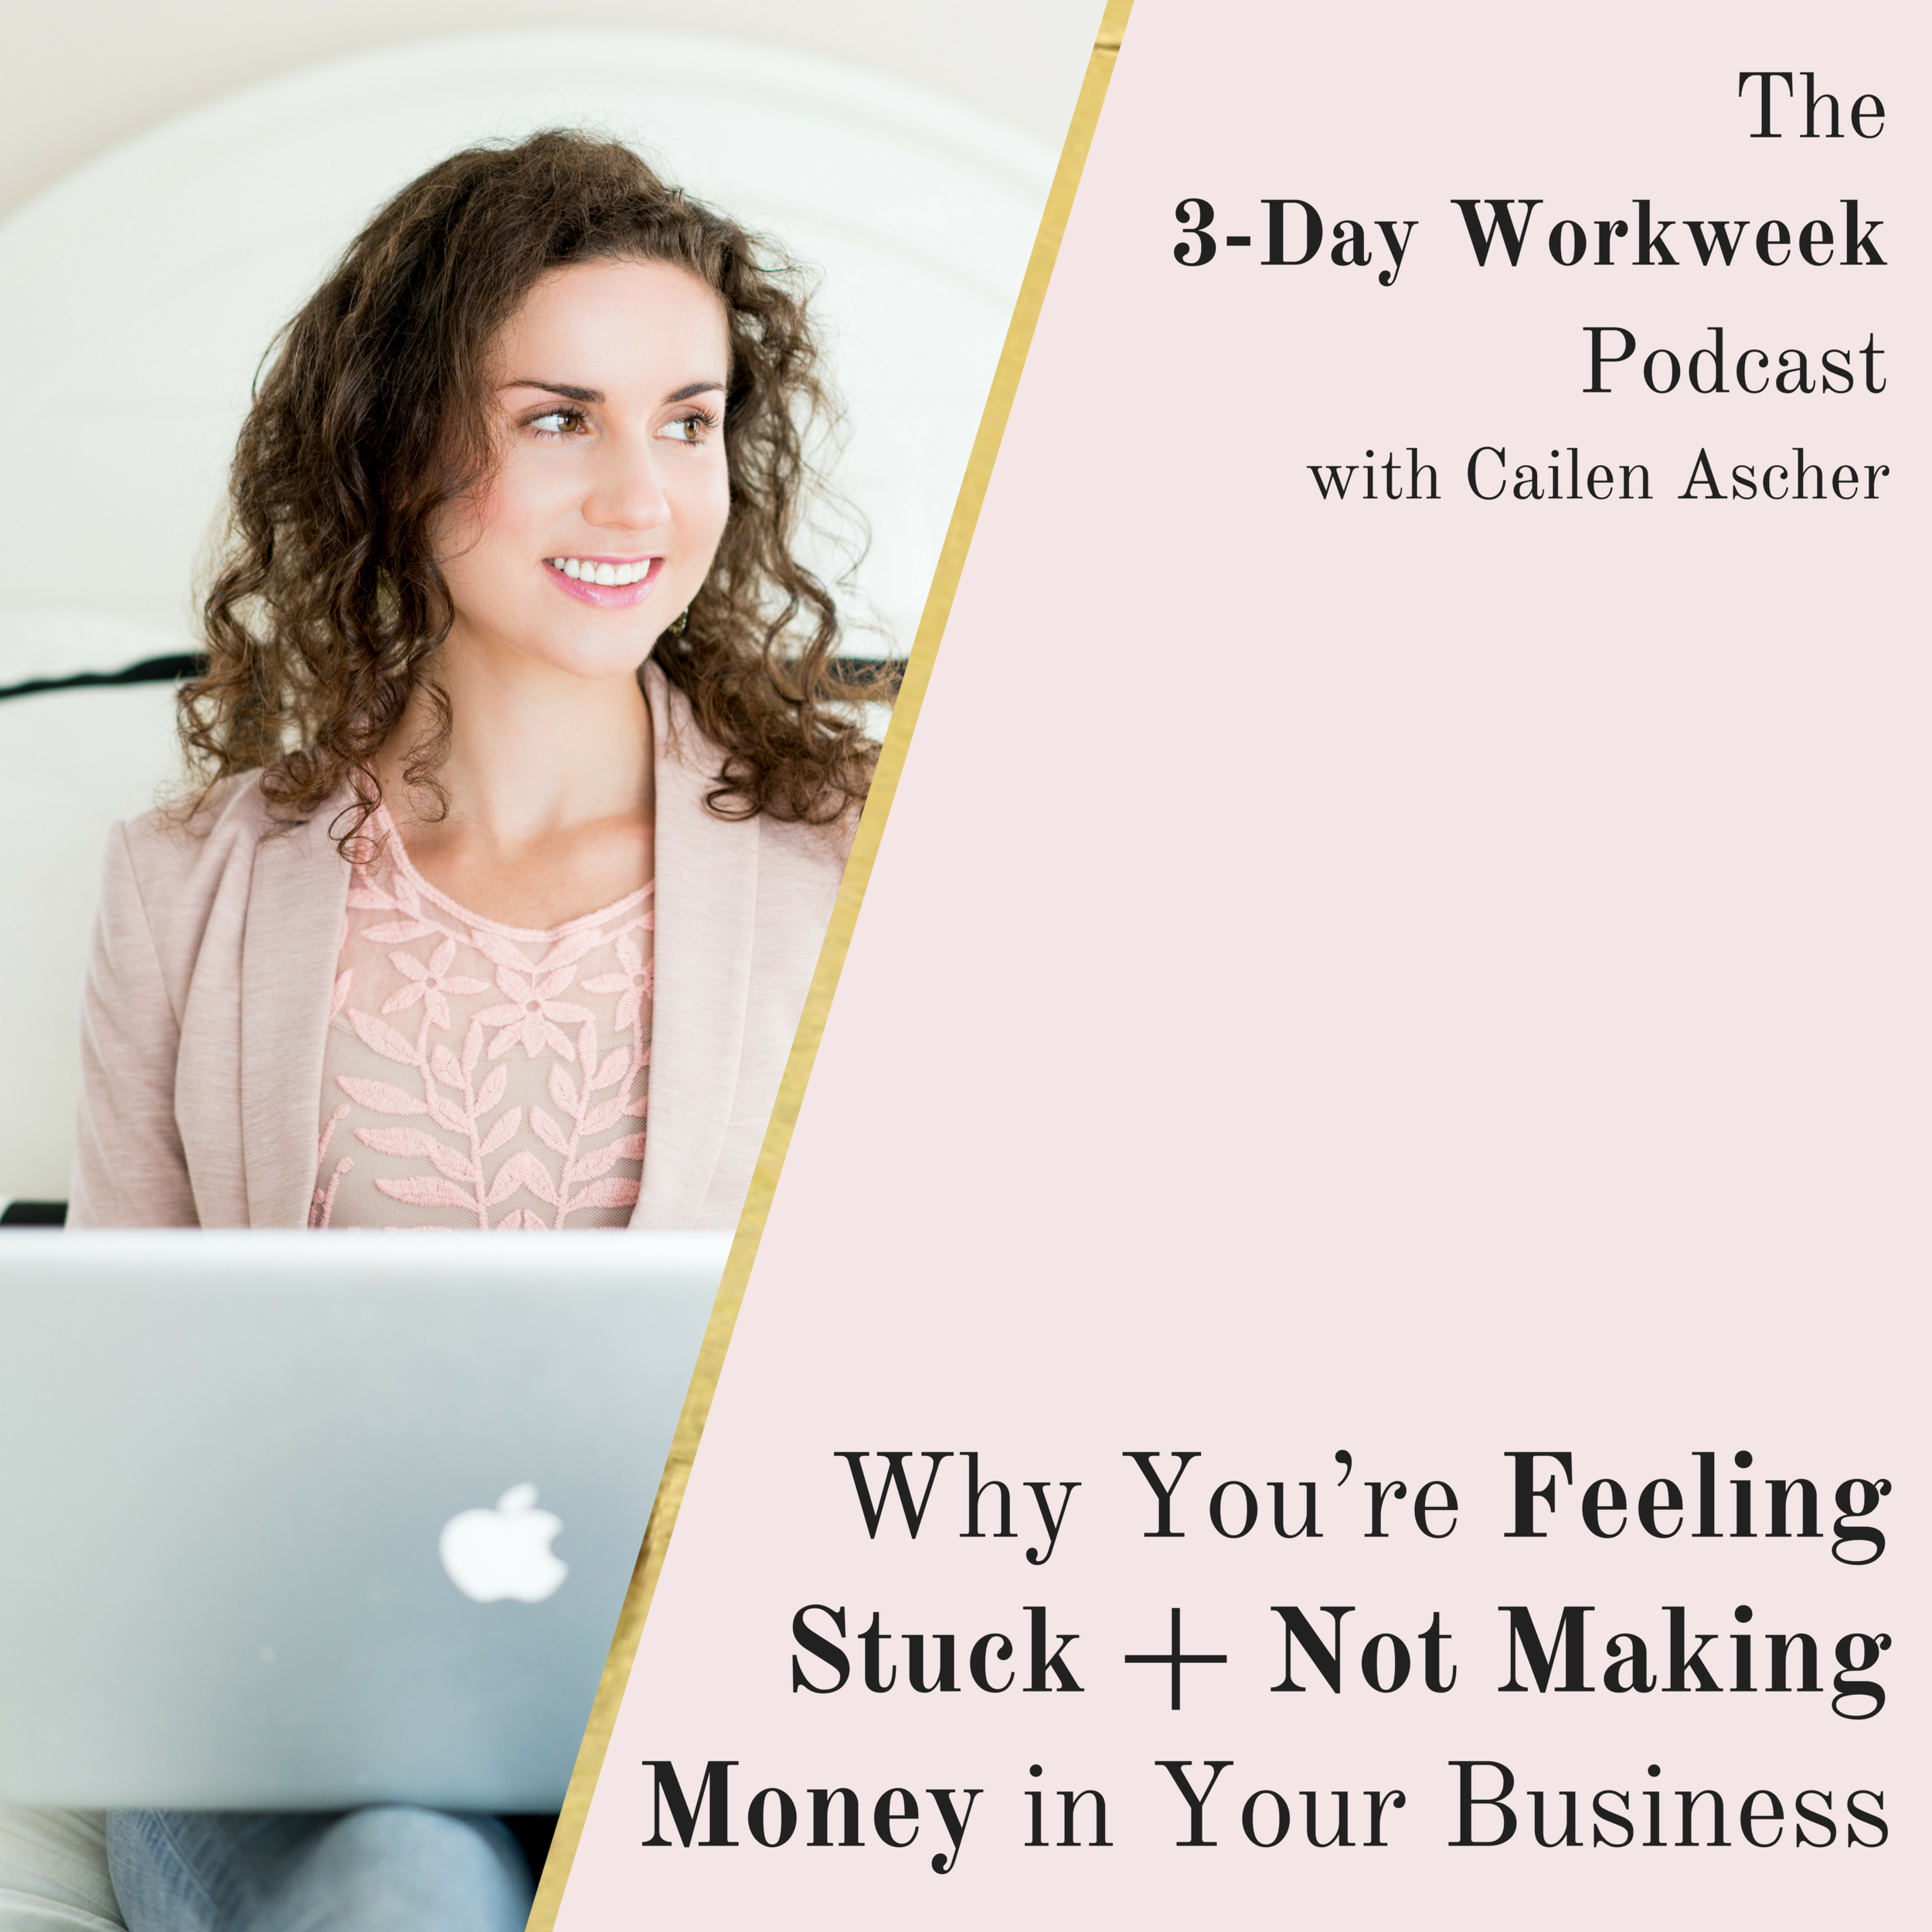 The 3-Day Workweek Podcast with Cailen Ascher - 2018-05-16 - Why You're Feeling Stuck + Not Making Money in Your Business - Square Promo Image.png